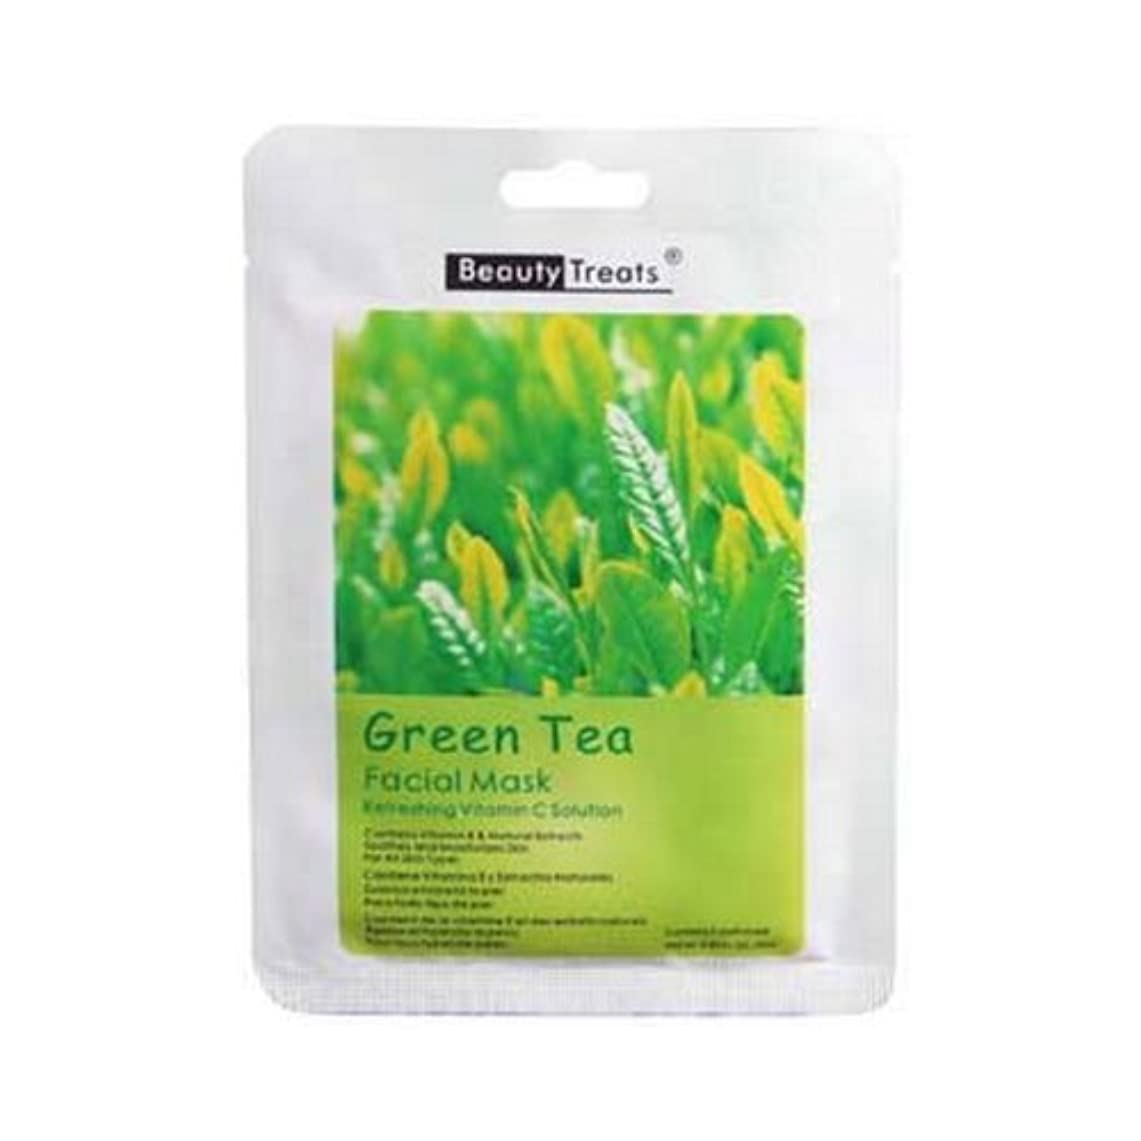 タブレットエンディング花瓶(3 Pack) BEAUTY TREATS Facial Mask Refreshing Vitamin C Solution - Green Tea (並行輸入品)